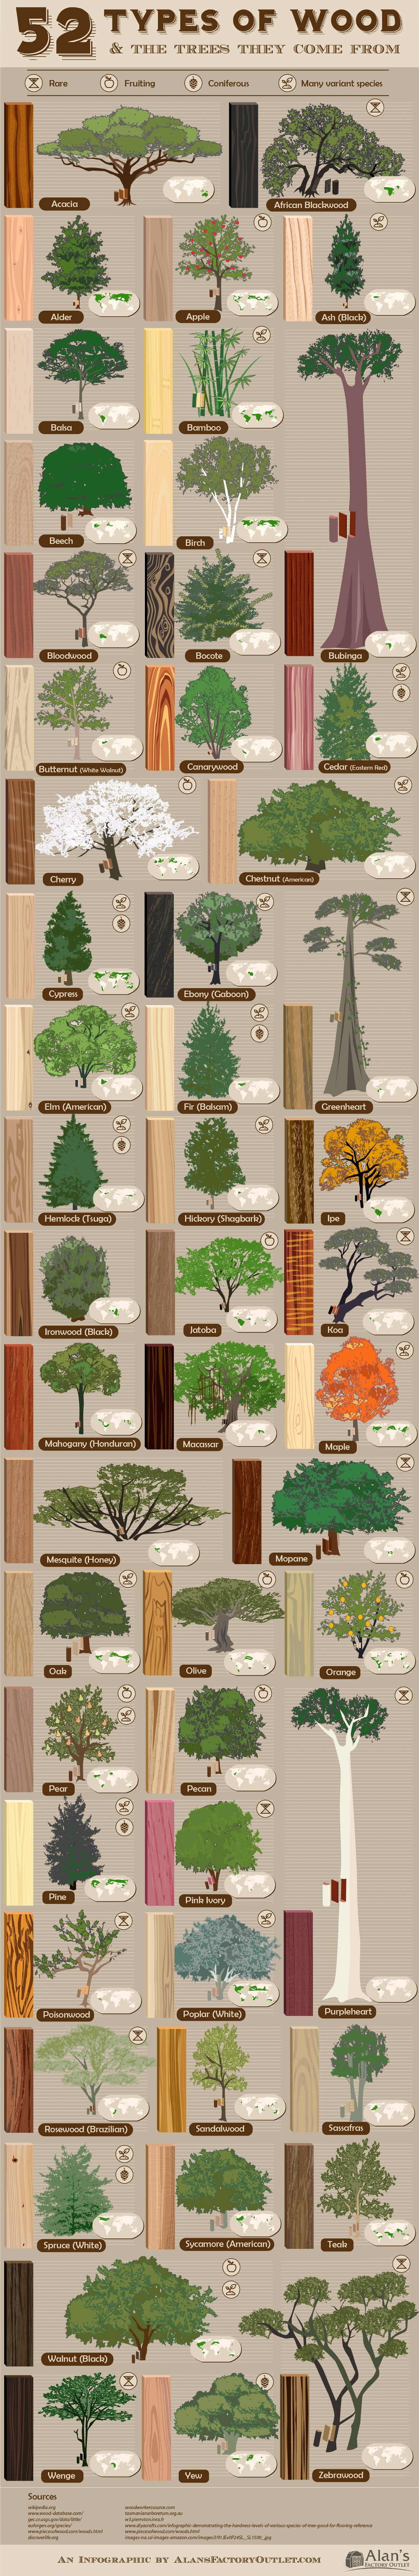 trees, wood, infographic, woodworking, diversity, woodz